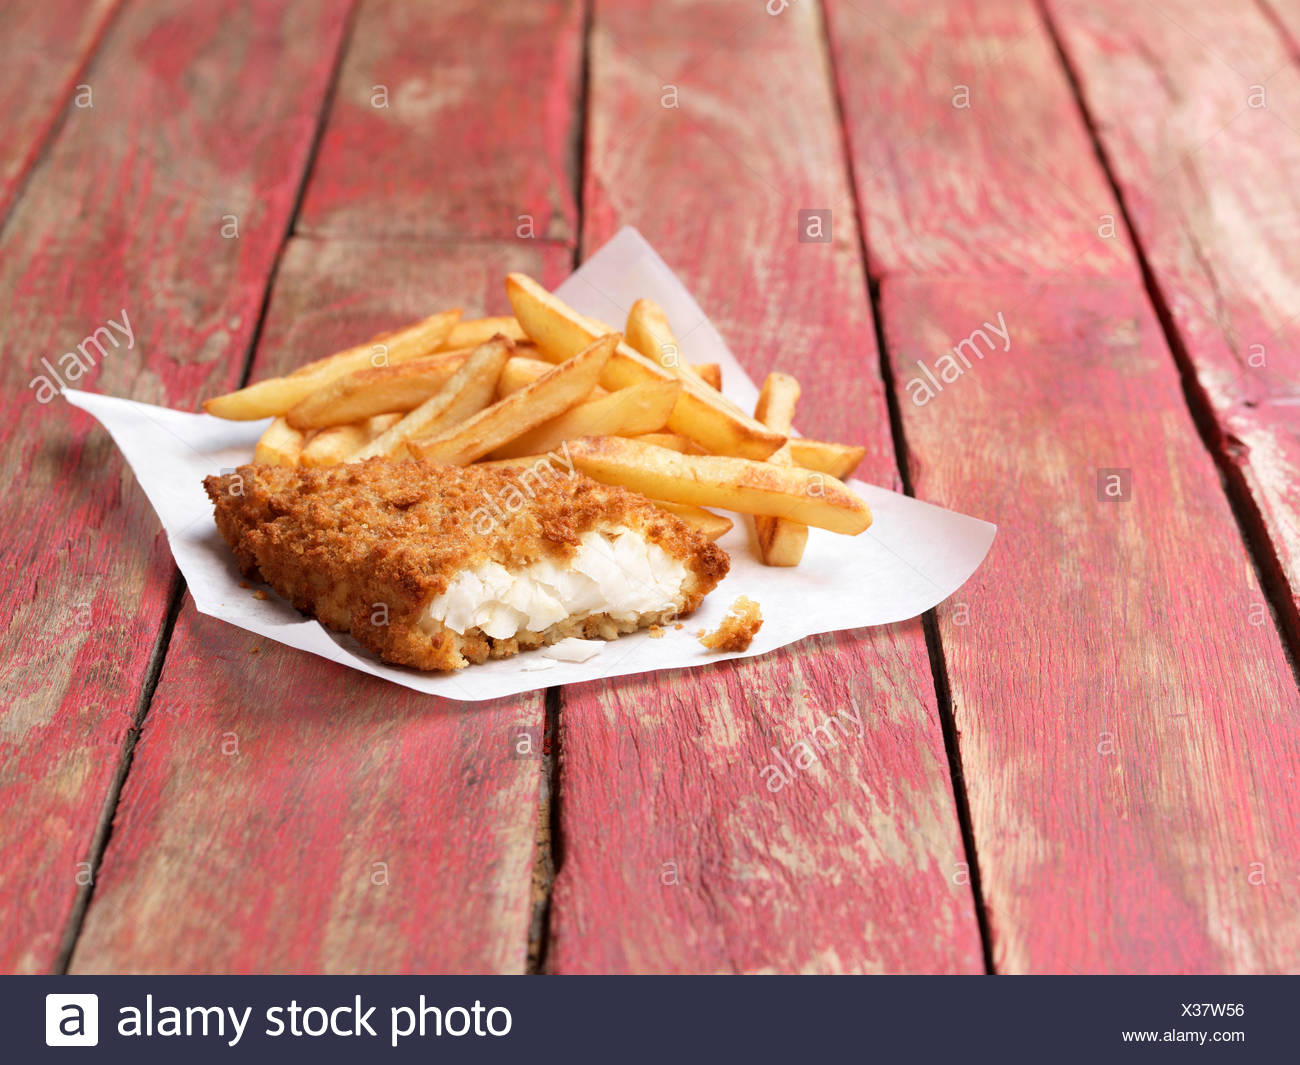 Food, fish, breaded cod and chips on rustic red painted wood - Stock Image